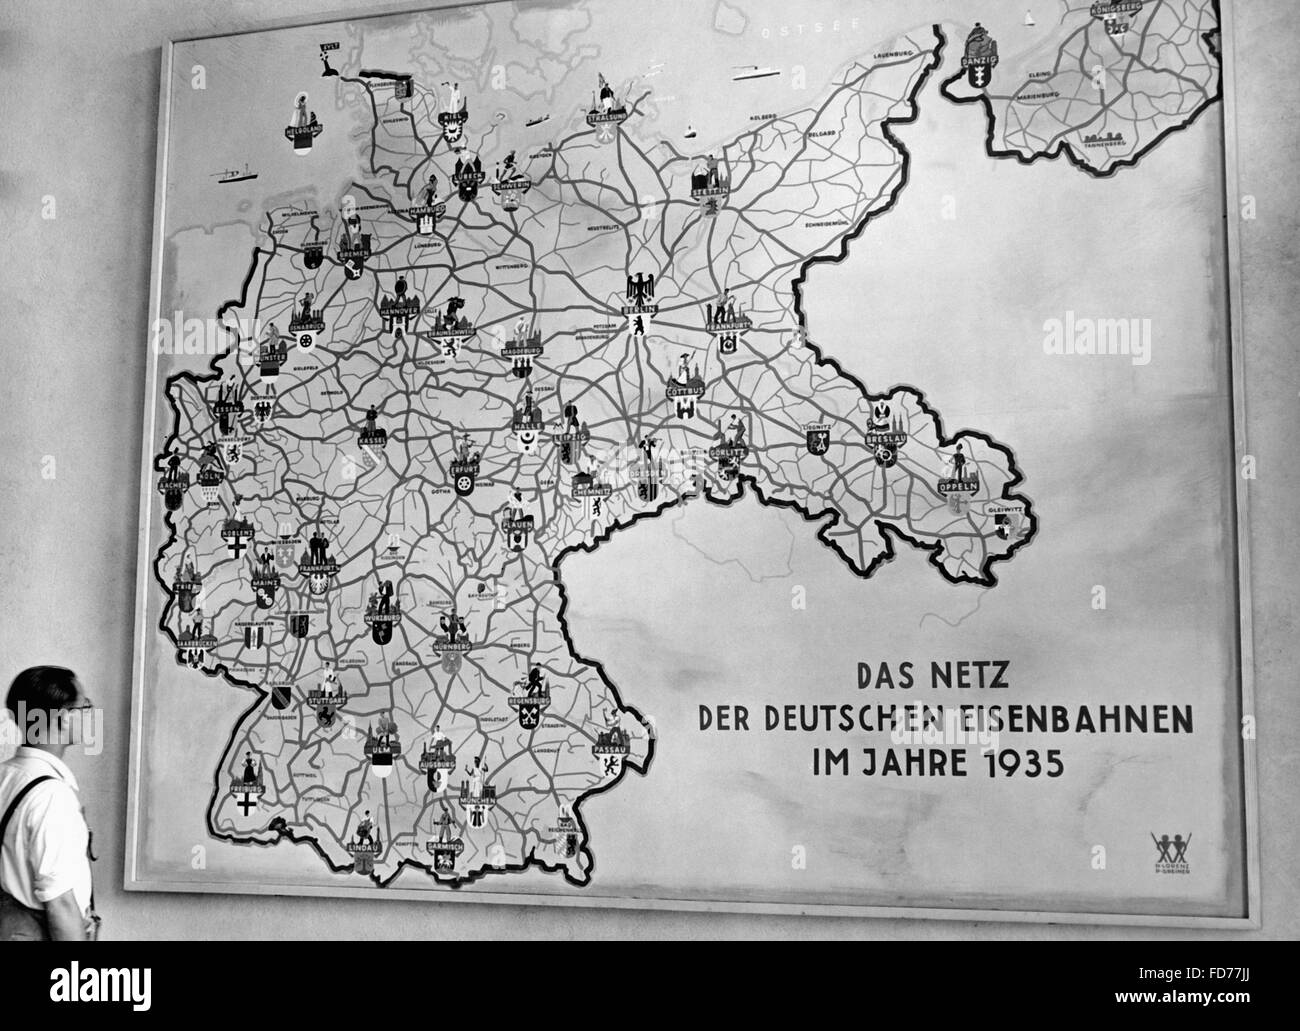 Rail network of the Reichsbahn (Reich Railway), 1935 - Stock Image